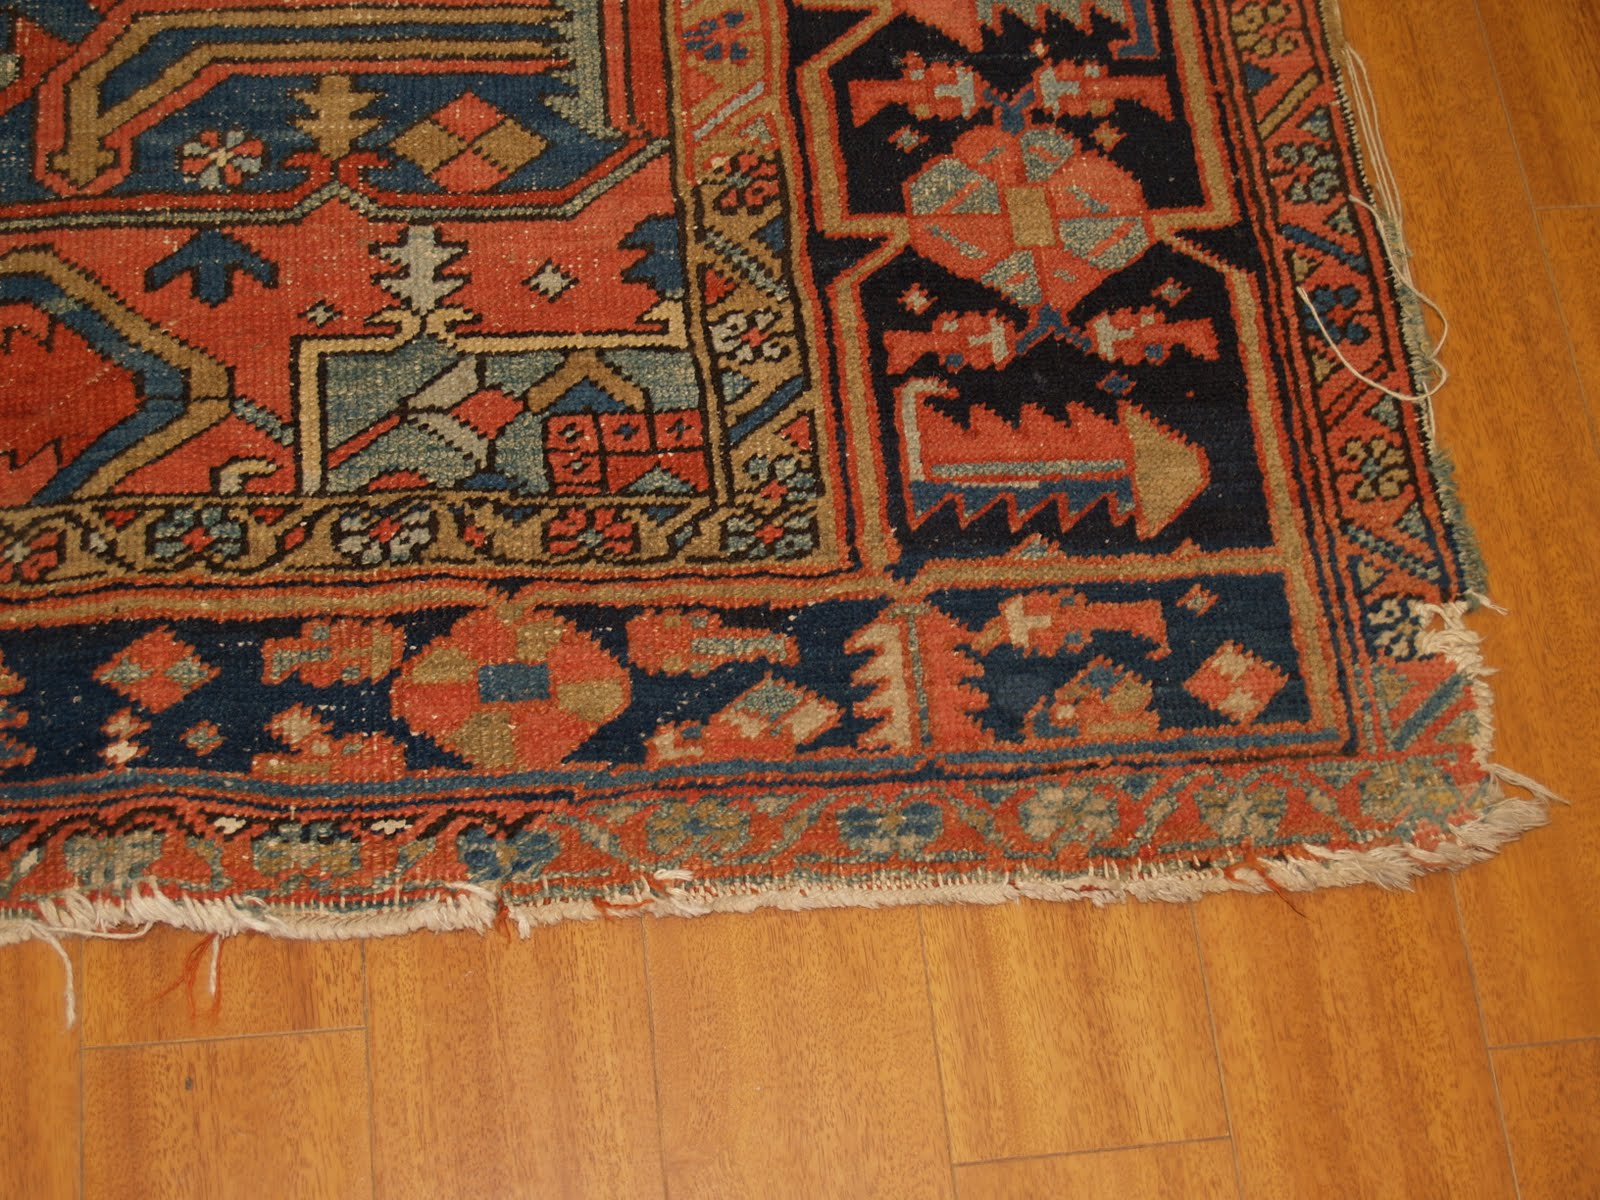 We Received A Severely Damaged Hand Knotted Persian Heriz Rug For Cleaning  And Repair. Here I Am Posting Some Information In General On Heriz Carpets  With ...